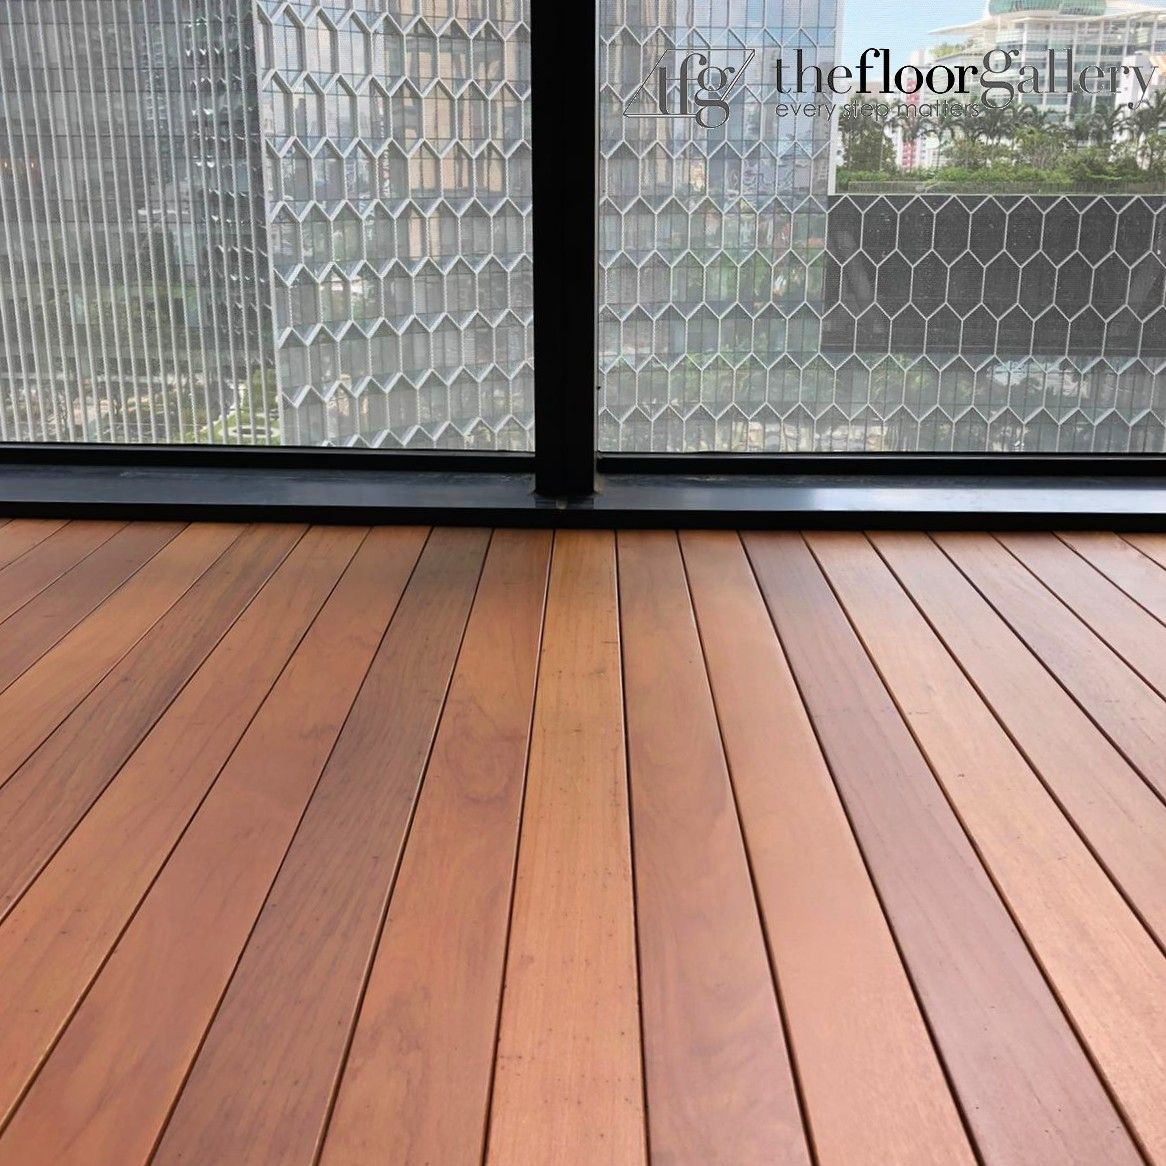 Chengal Is One Of The Commonly Used Material For Decking As It Is Elegant And Stunning Outdoor Decor Balcony Deck Deck